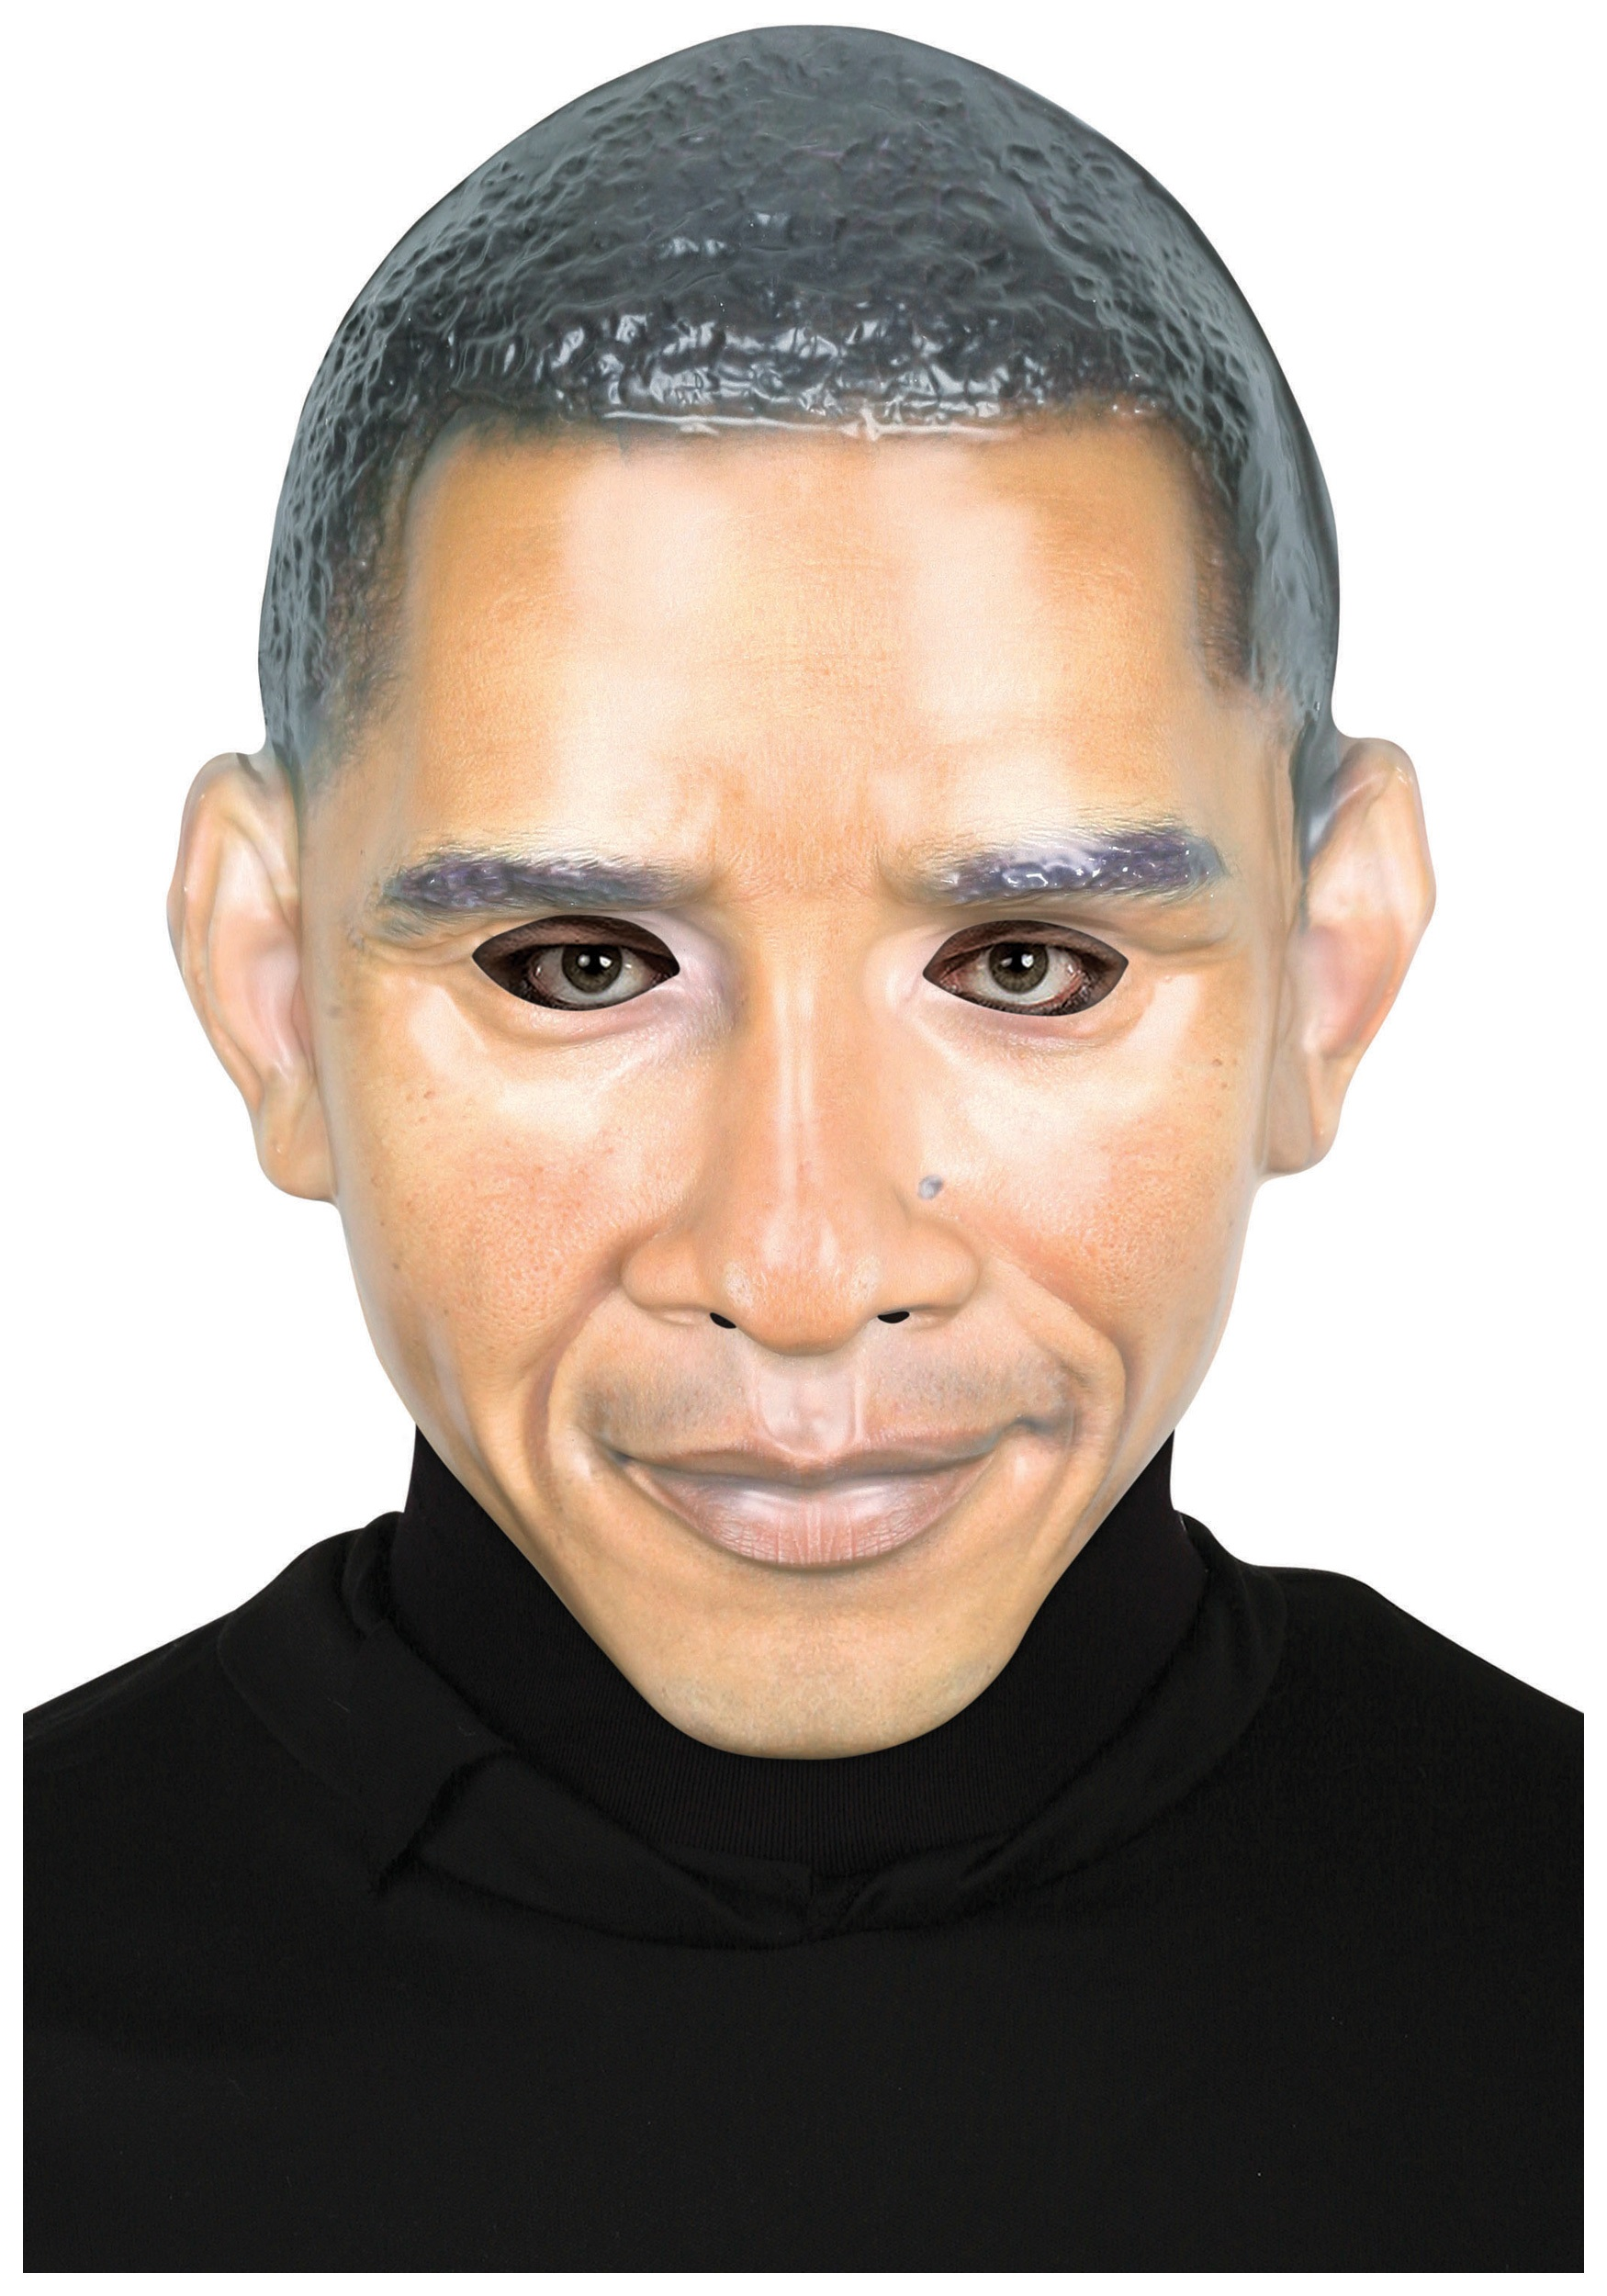 mister president mask - halloween costume ideas 2018